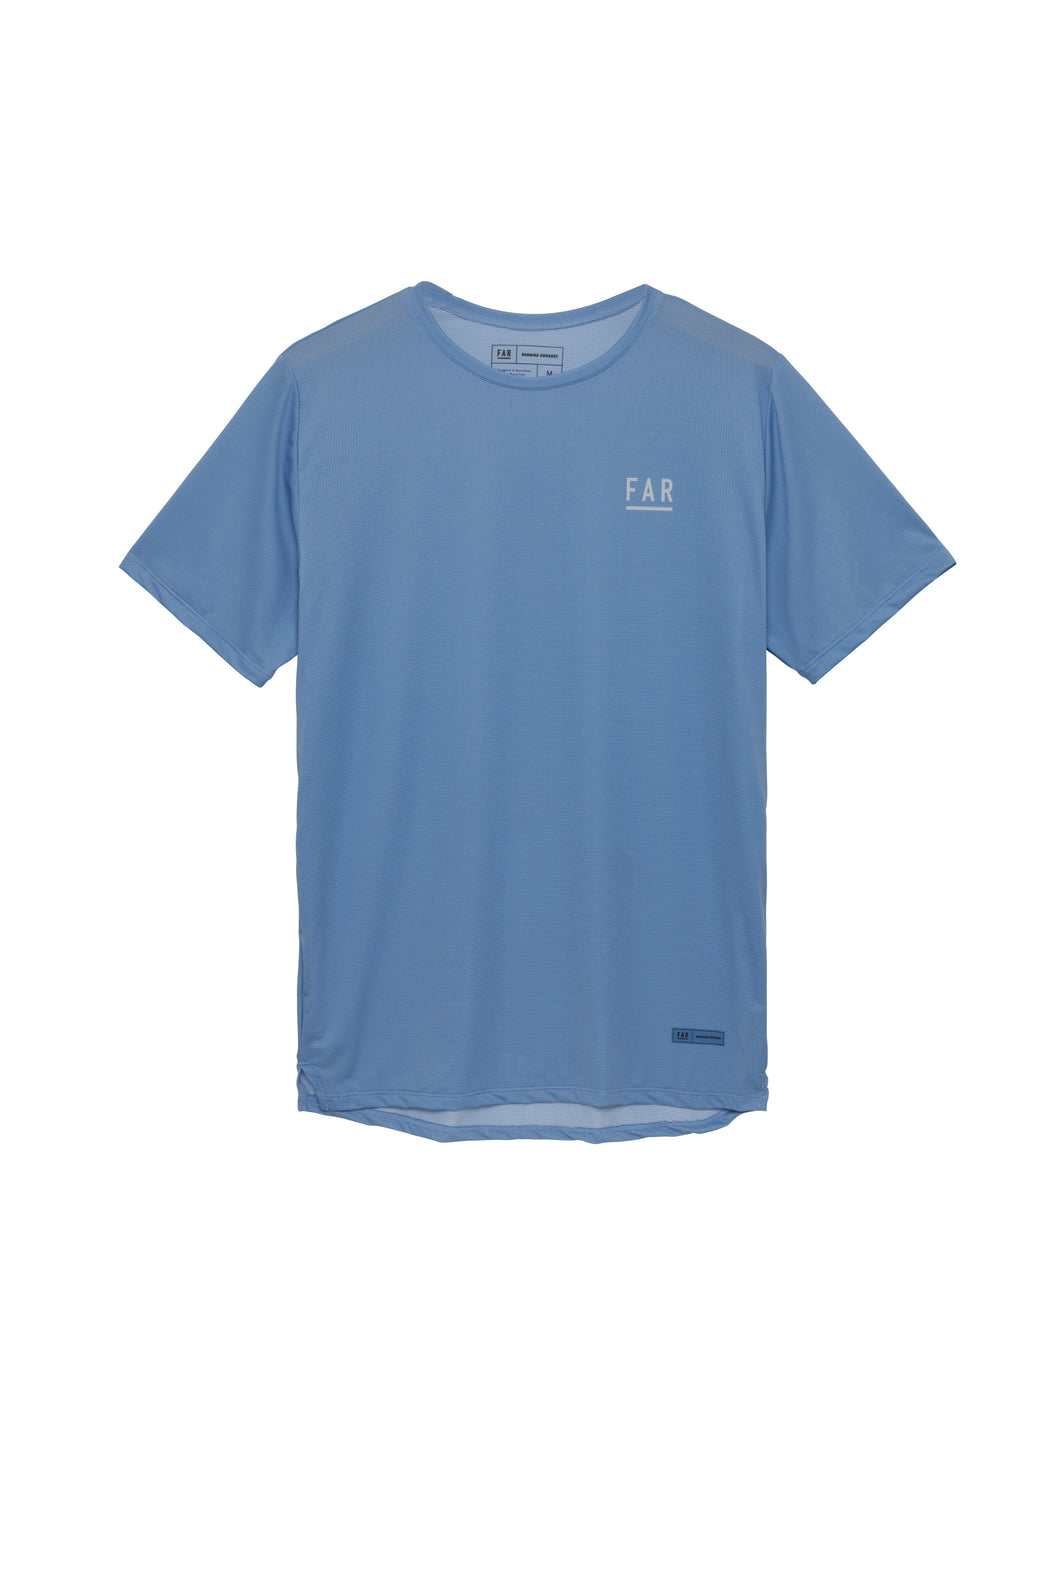 Ultralight Performance Running Tee - Soft Blue